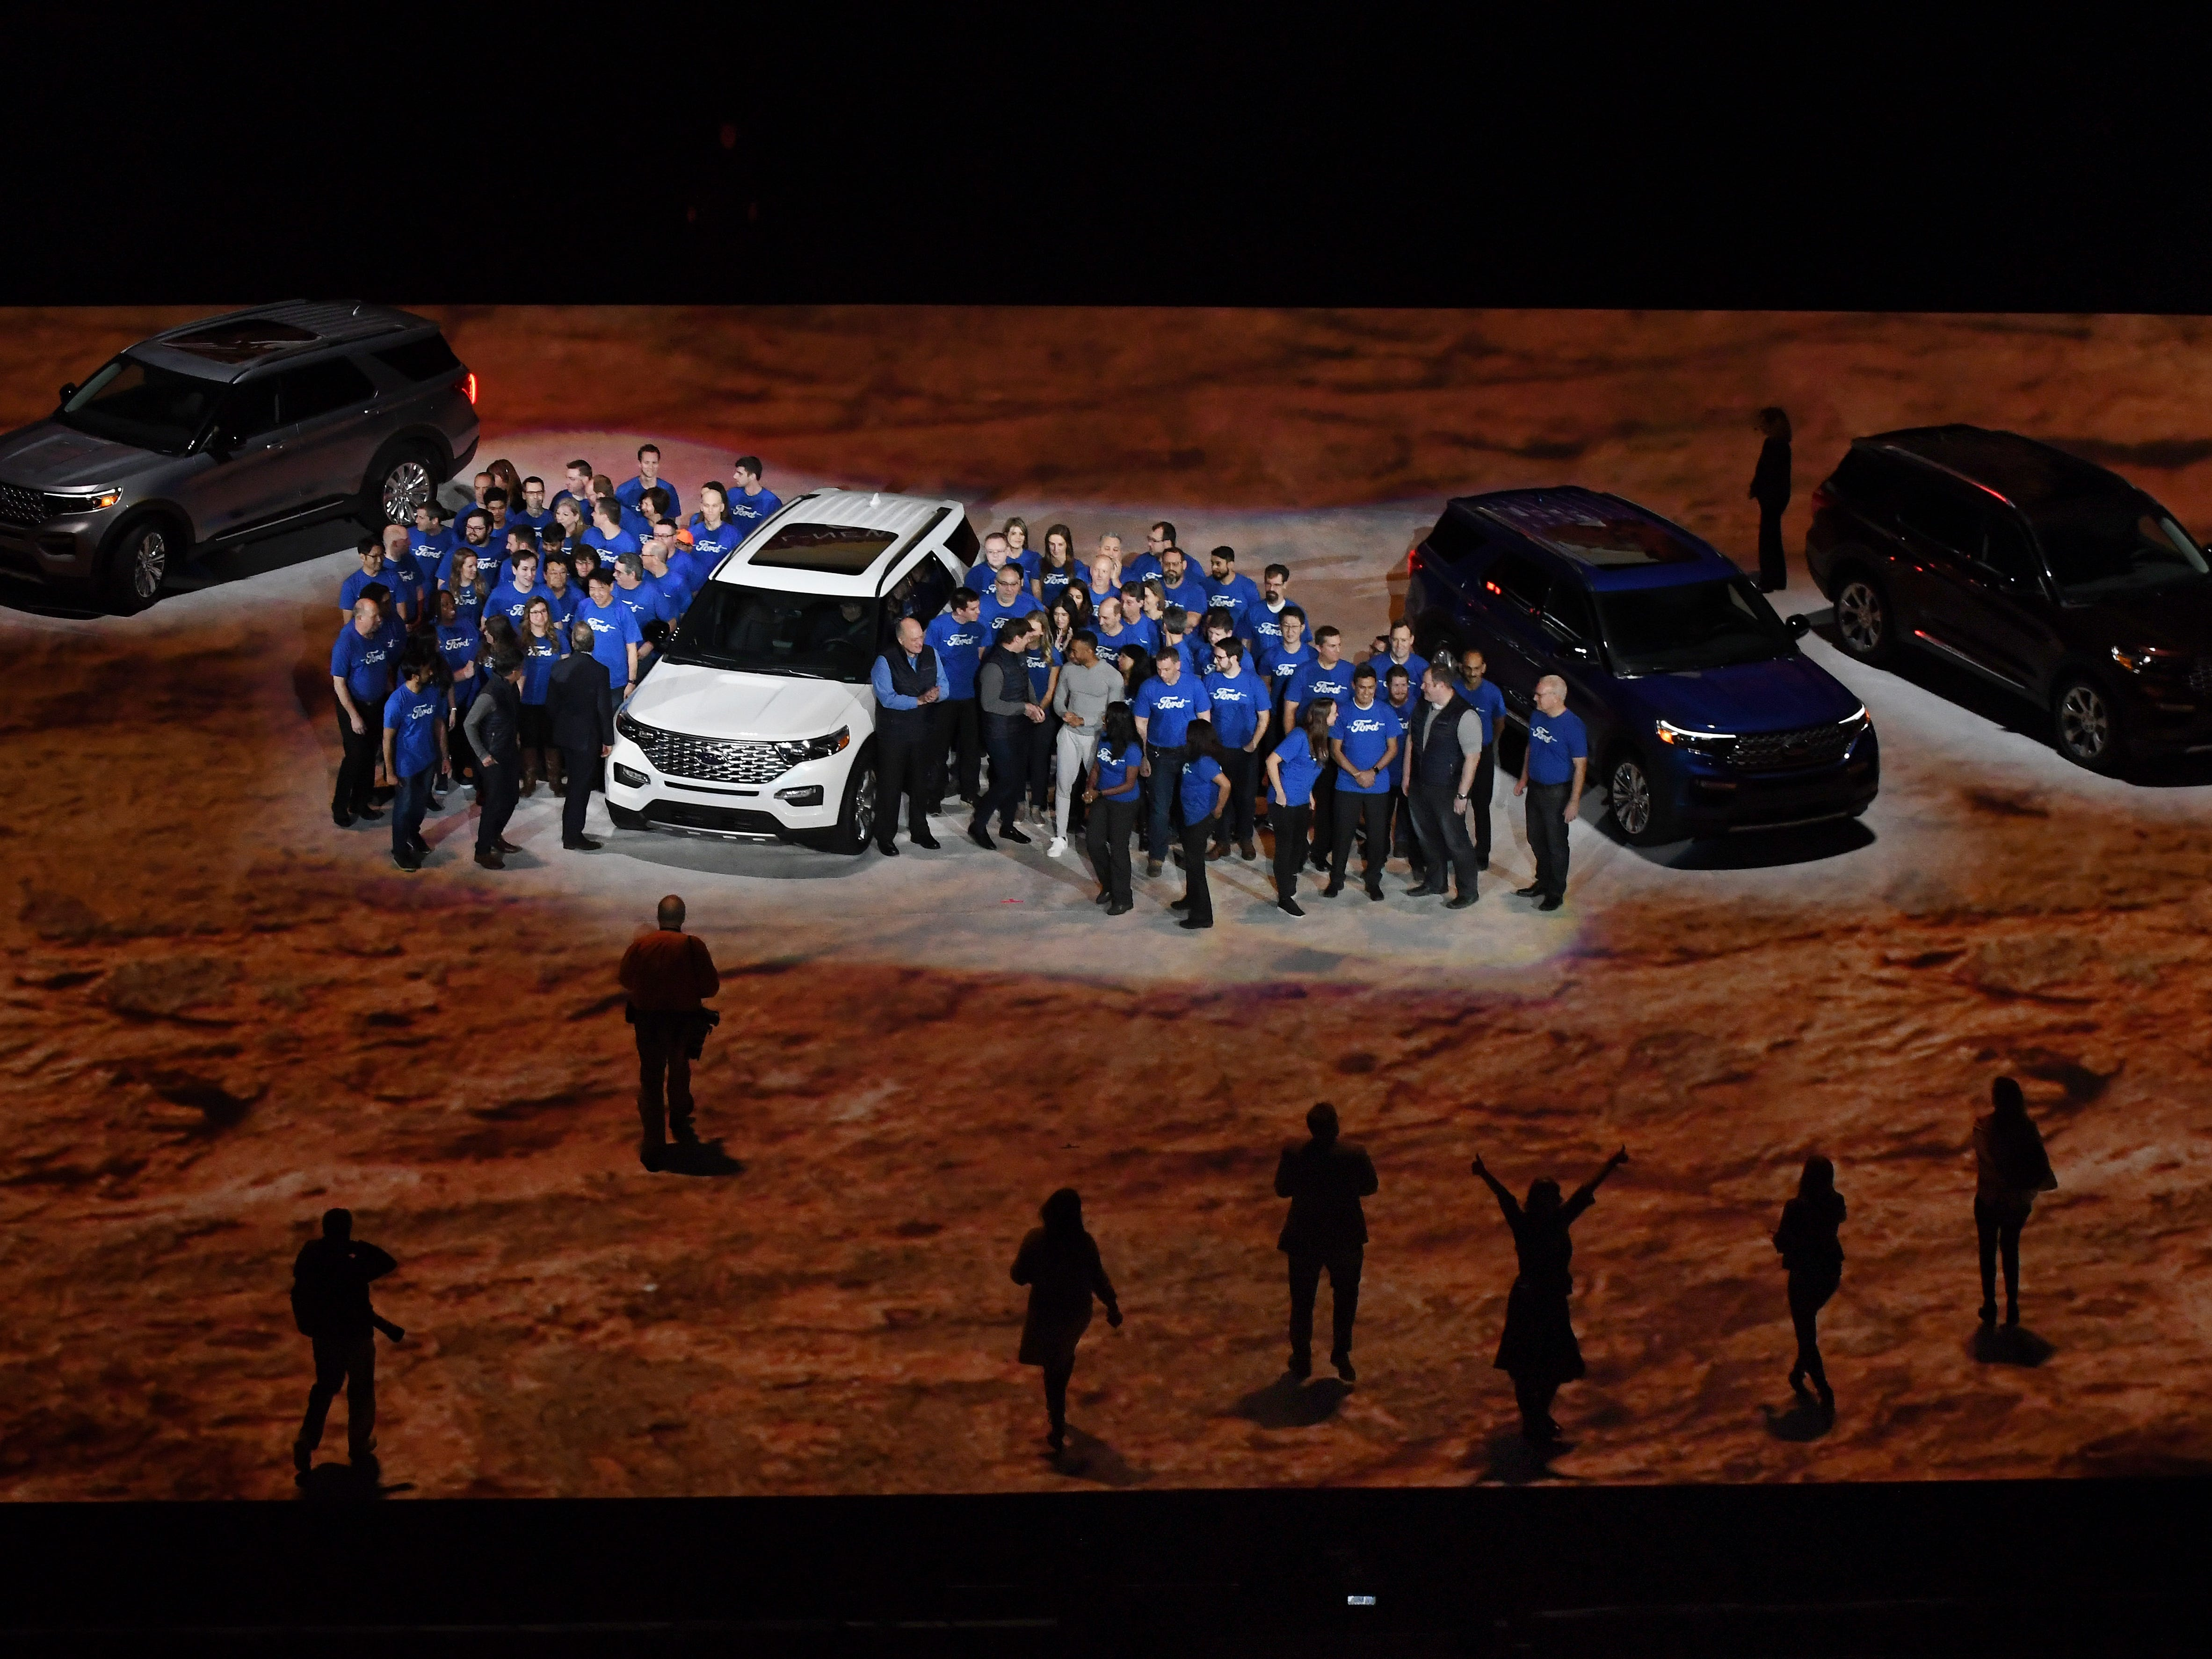 2020 Ford Explorer reveal at Ford Field in Detroit, Michigan.